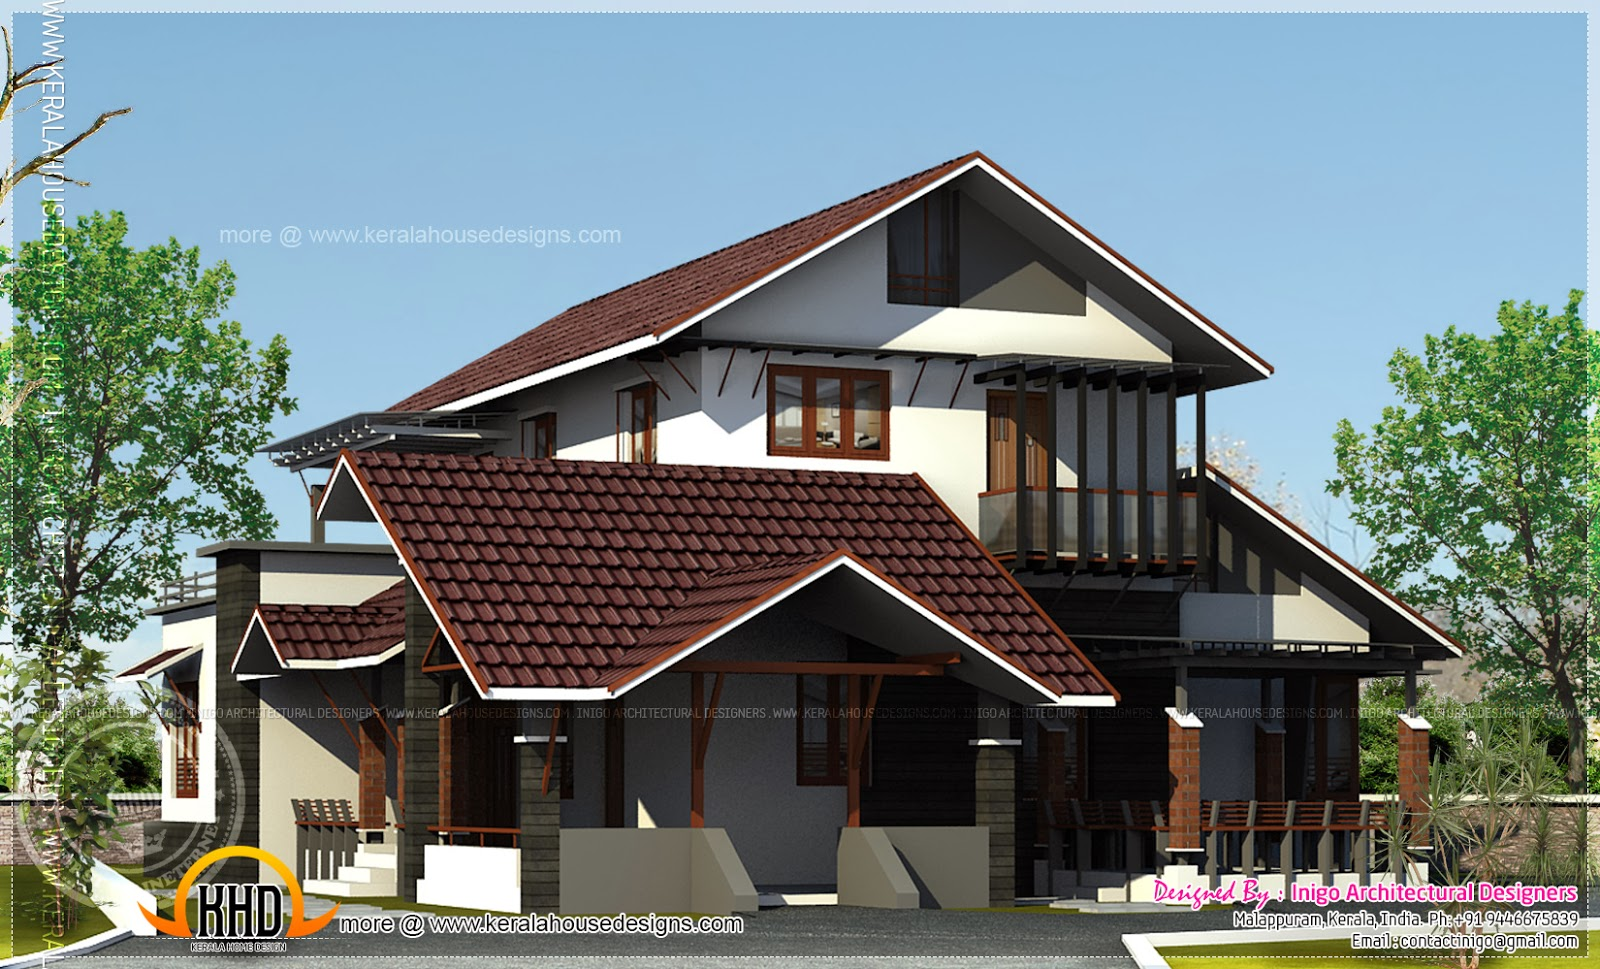 Kerala old home renovation ideas house plans 2017 Old home renovation in kerala